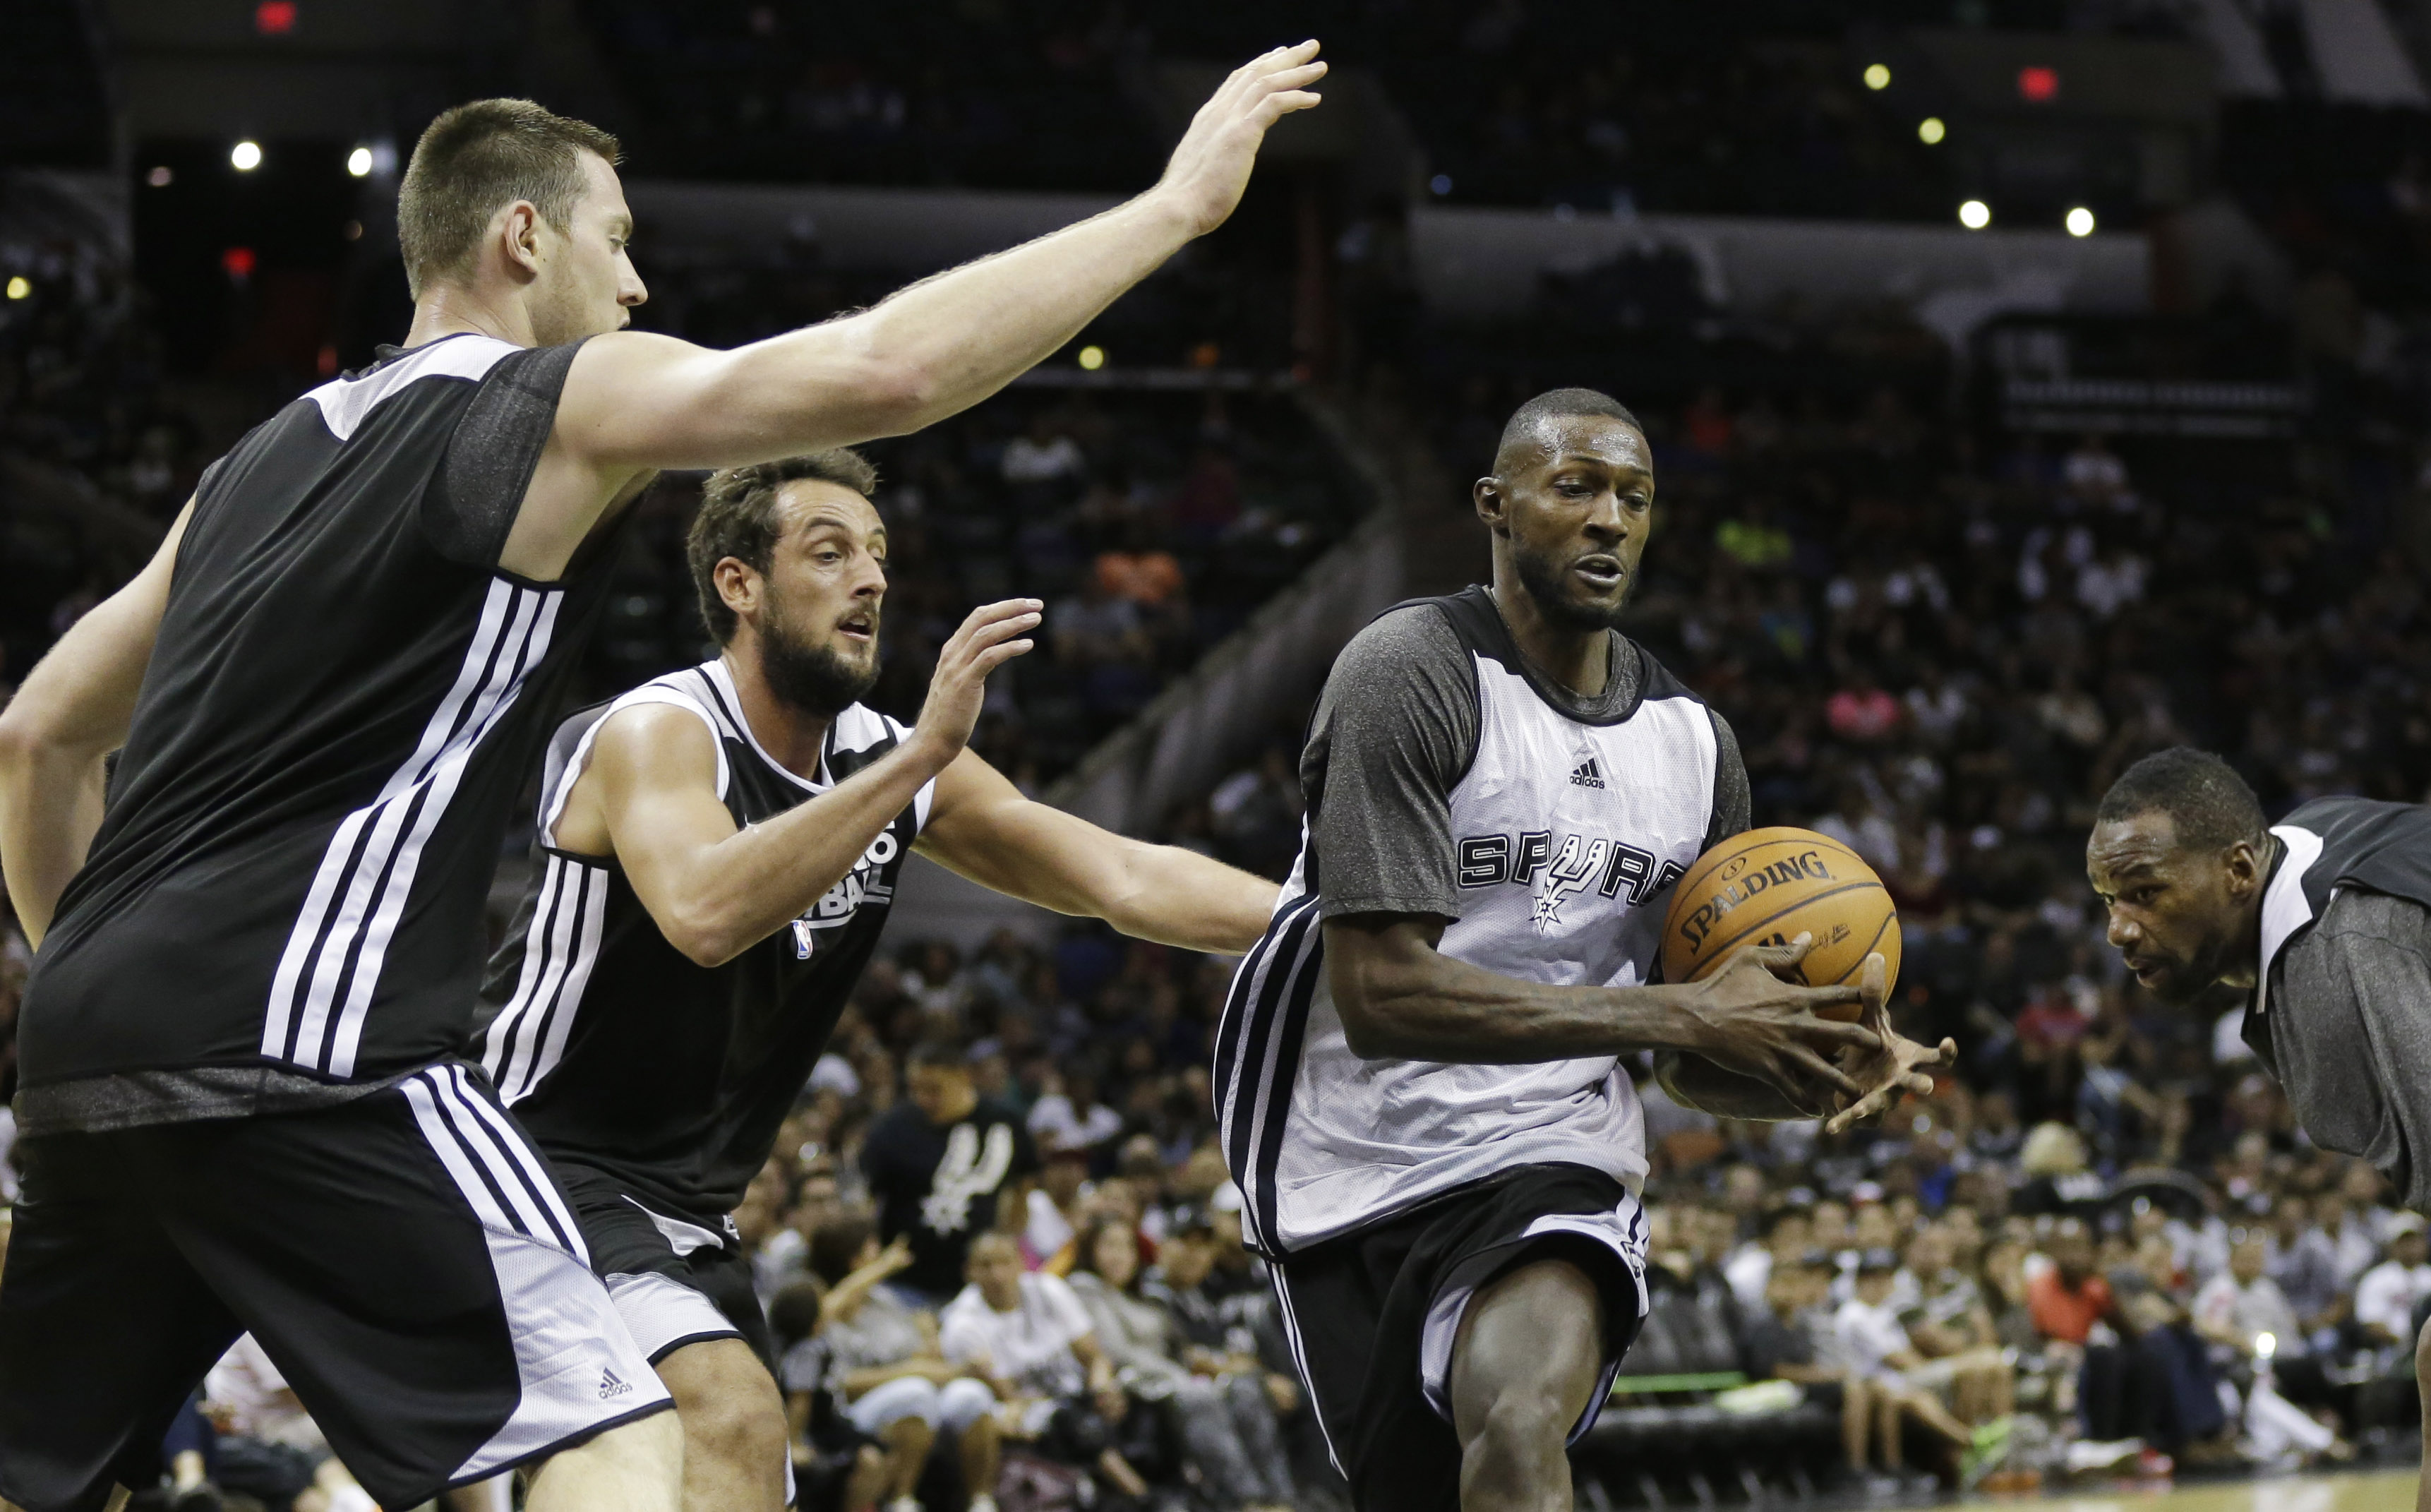 San Antonio Spurs' Courtney Fells, right, is defended by Spurs' Aron Baynes, left, of Australia, and Marco Belinelli, of Italy, during an open NBA basketball practice, Sunday, Oct. 6, 2013, in San Antonio